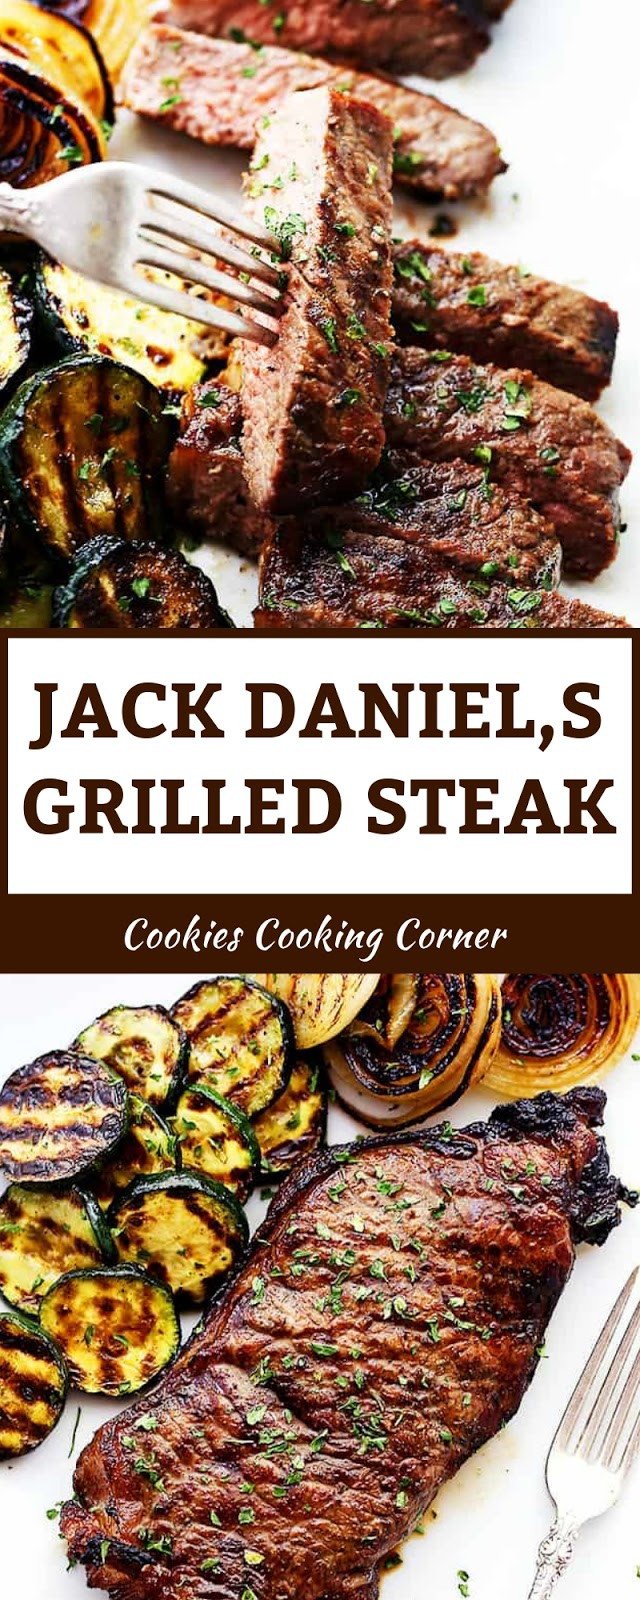 JACK DANIEL,S GRILLED STEAK